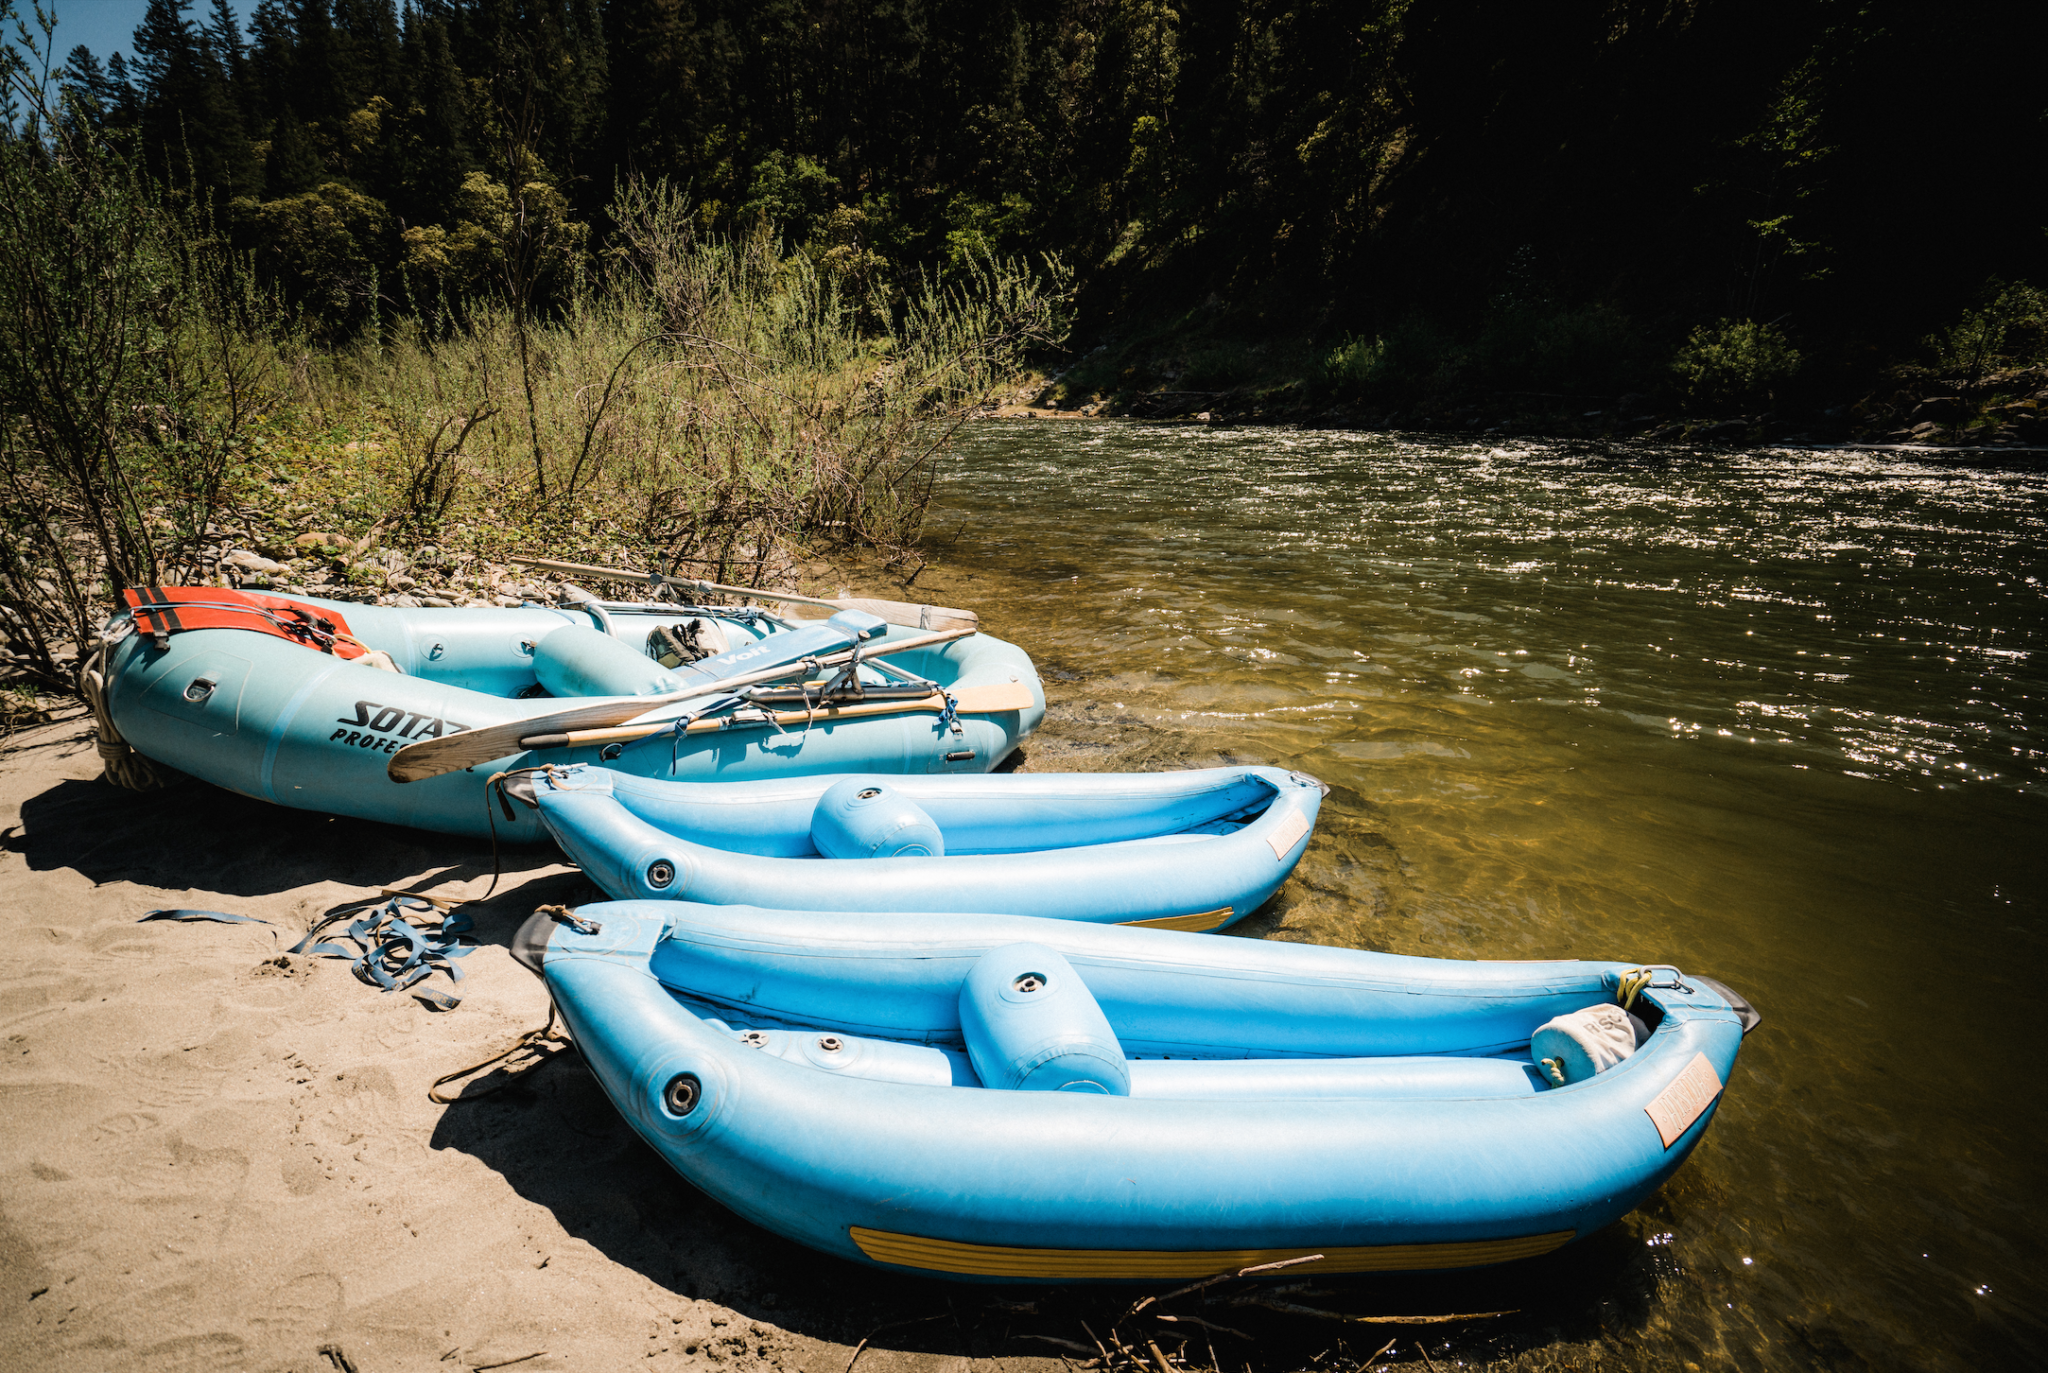 Discover Siskiyou Podcast featuring: Rafting at Happy Camp, CA